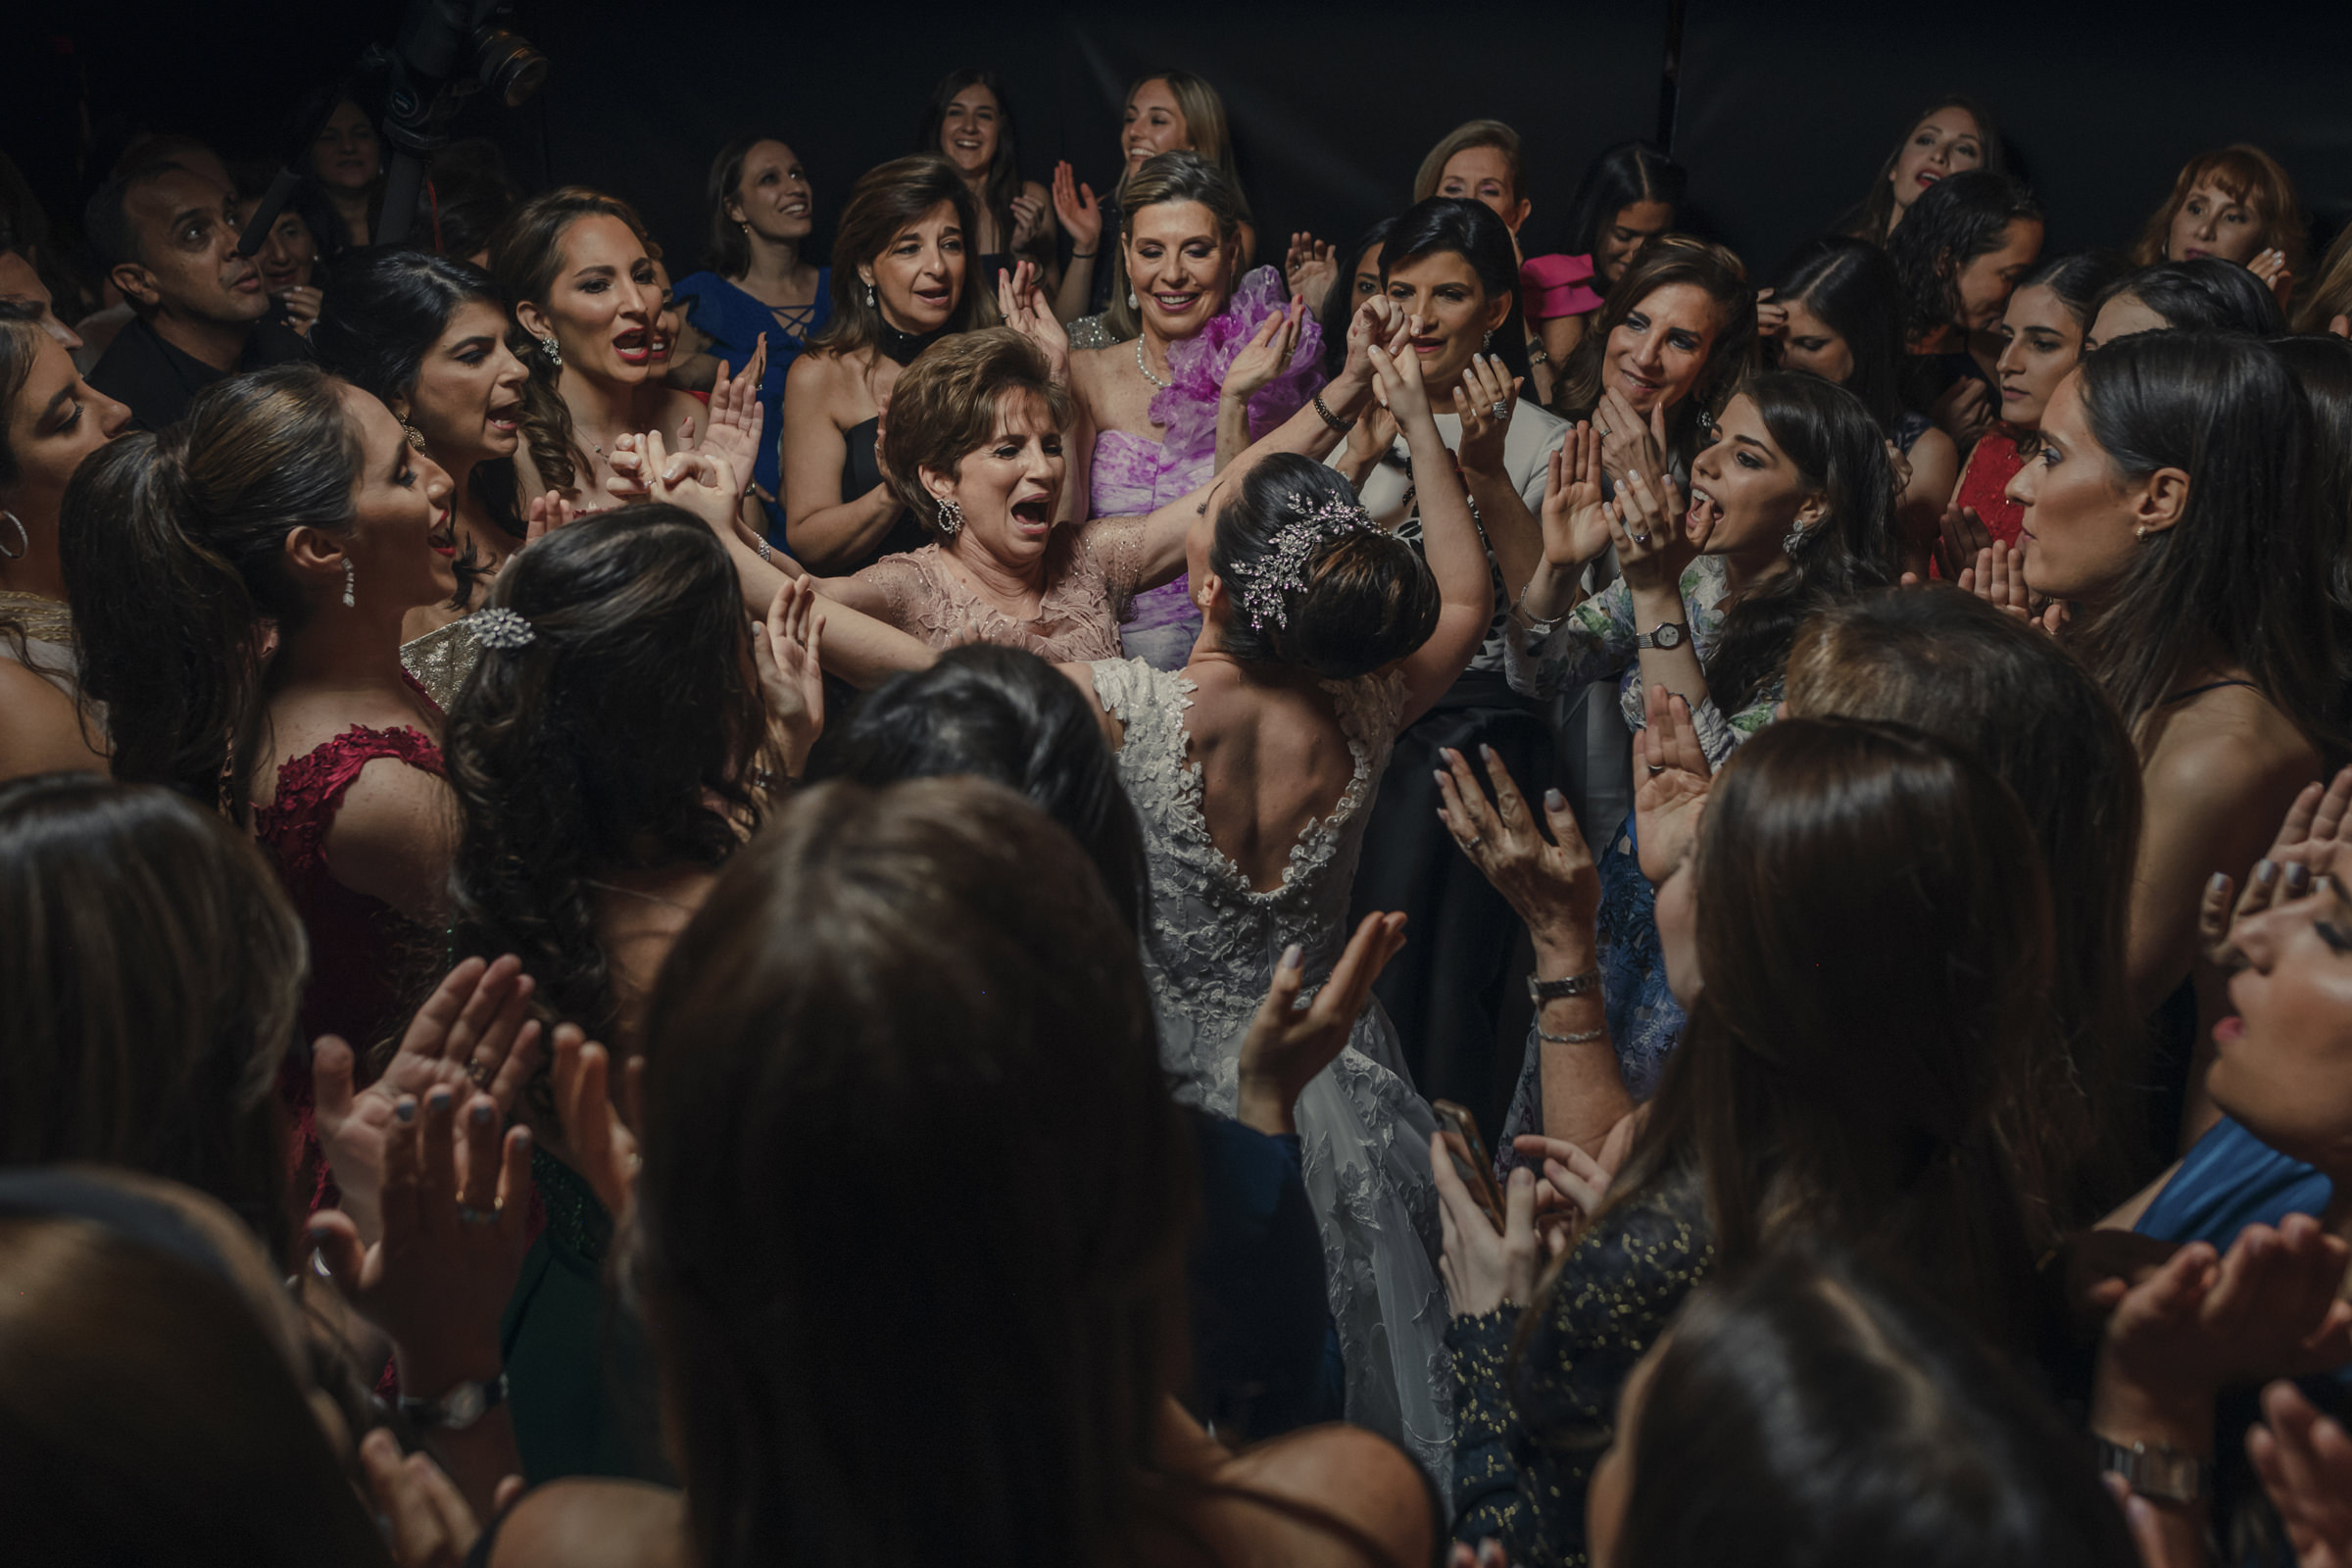 Bride and mother celebrate encircled by friends - photo by El Marco Rojo